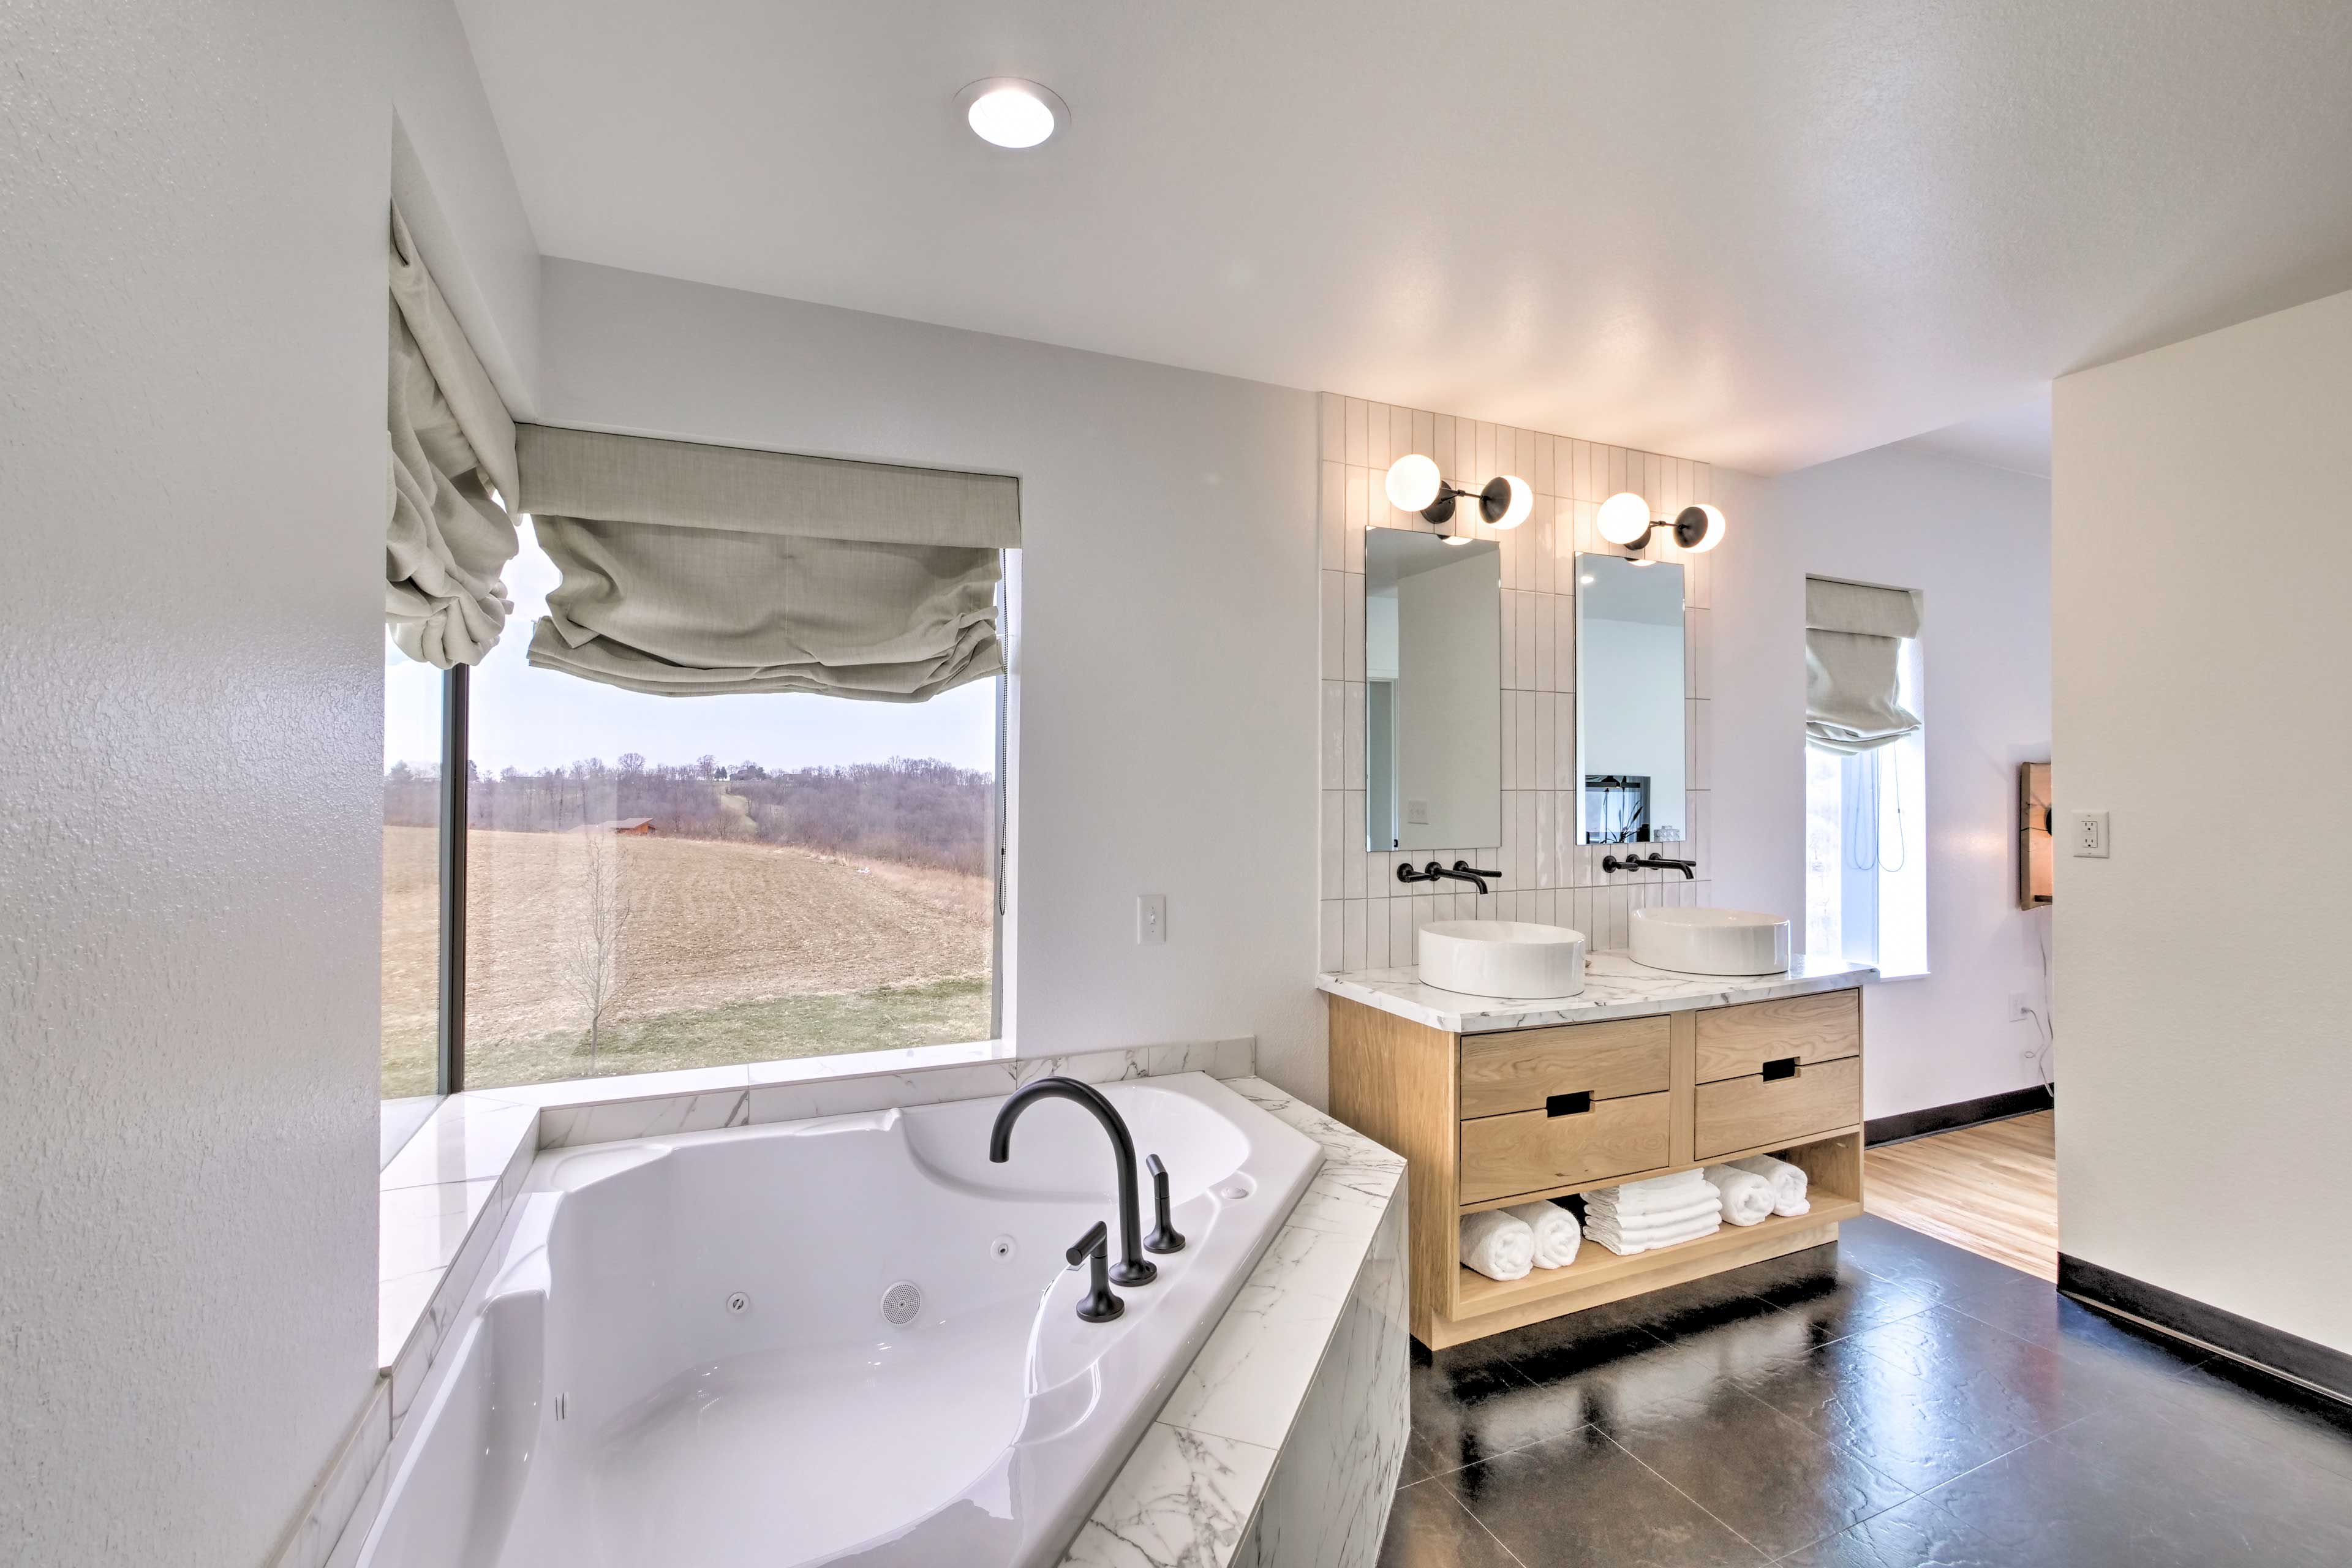 Enjoy the countryside views from the bathtub.